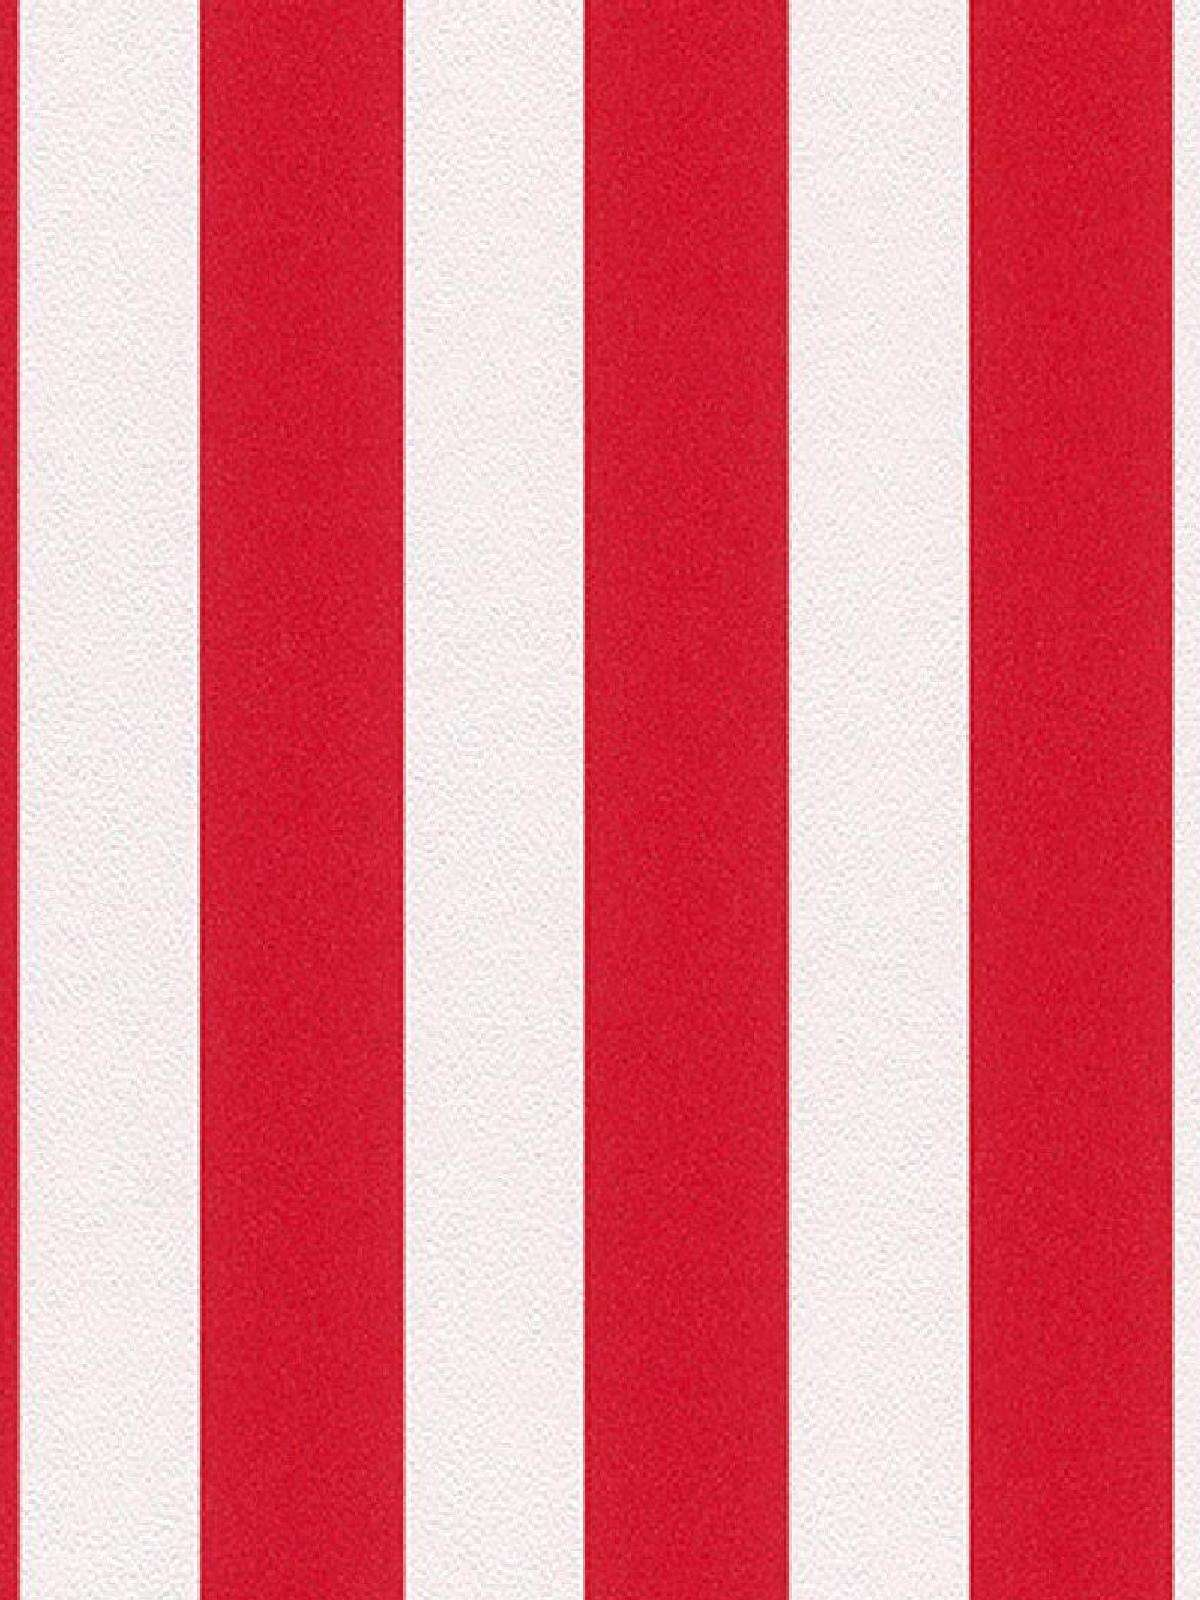 Red Striped Wallpaper